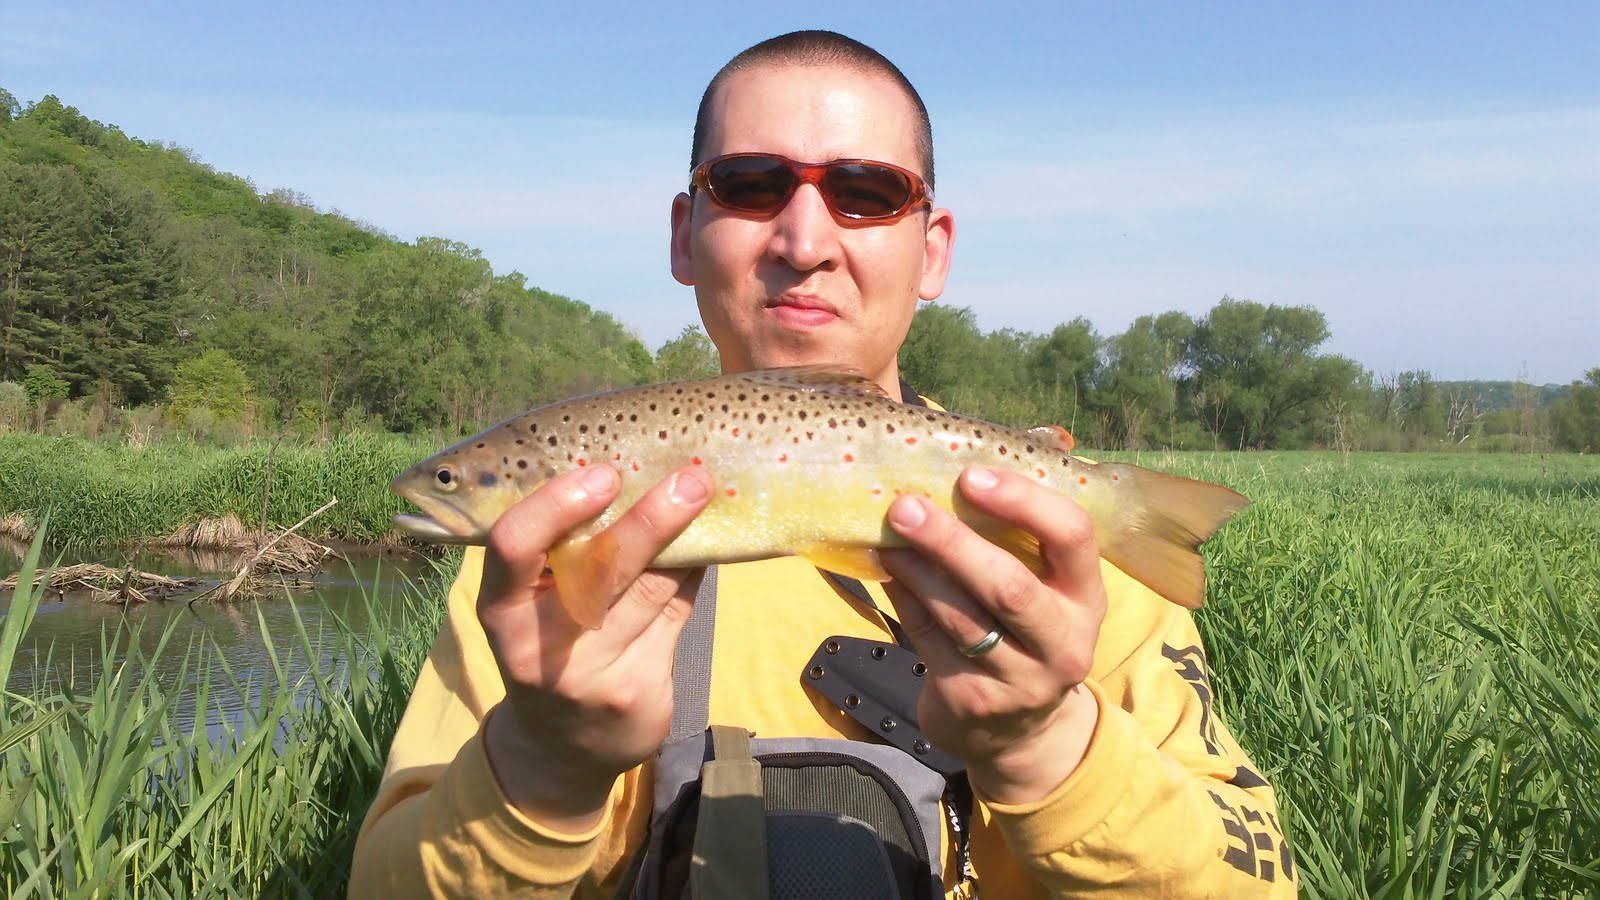 Illinois wisconsin fishing memorial day trout for Trout fishing illinois